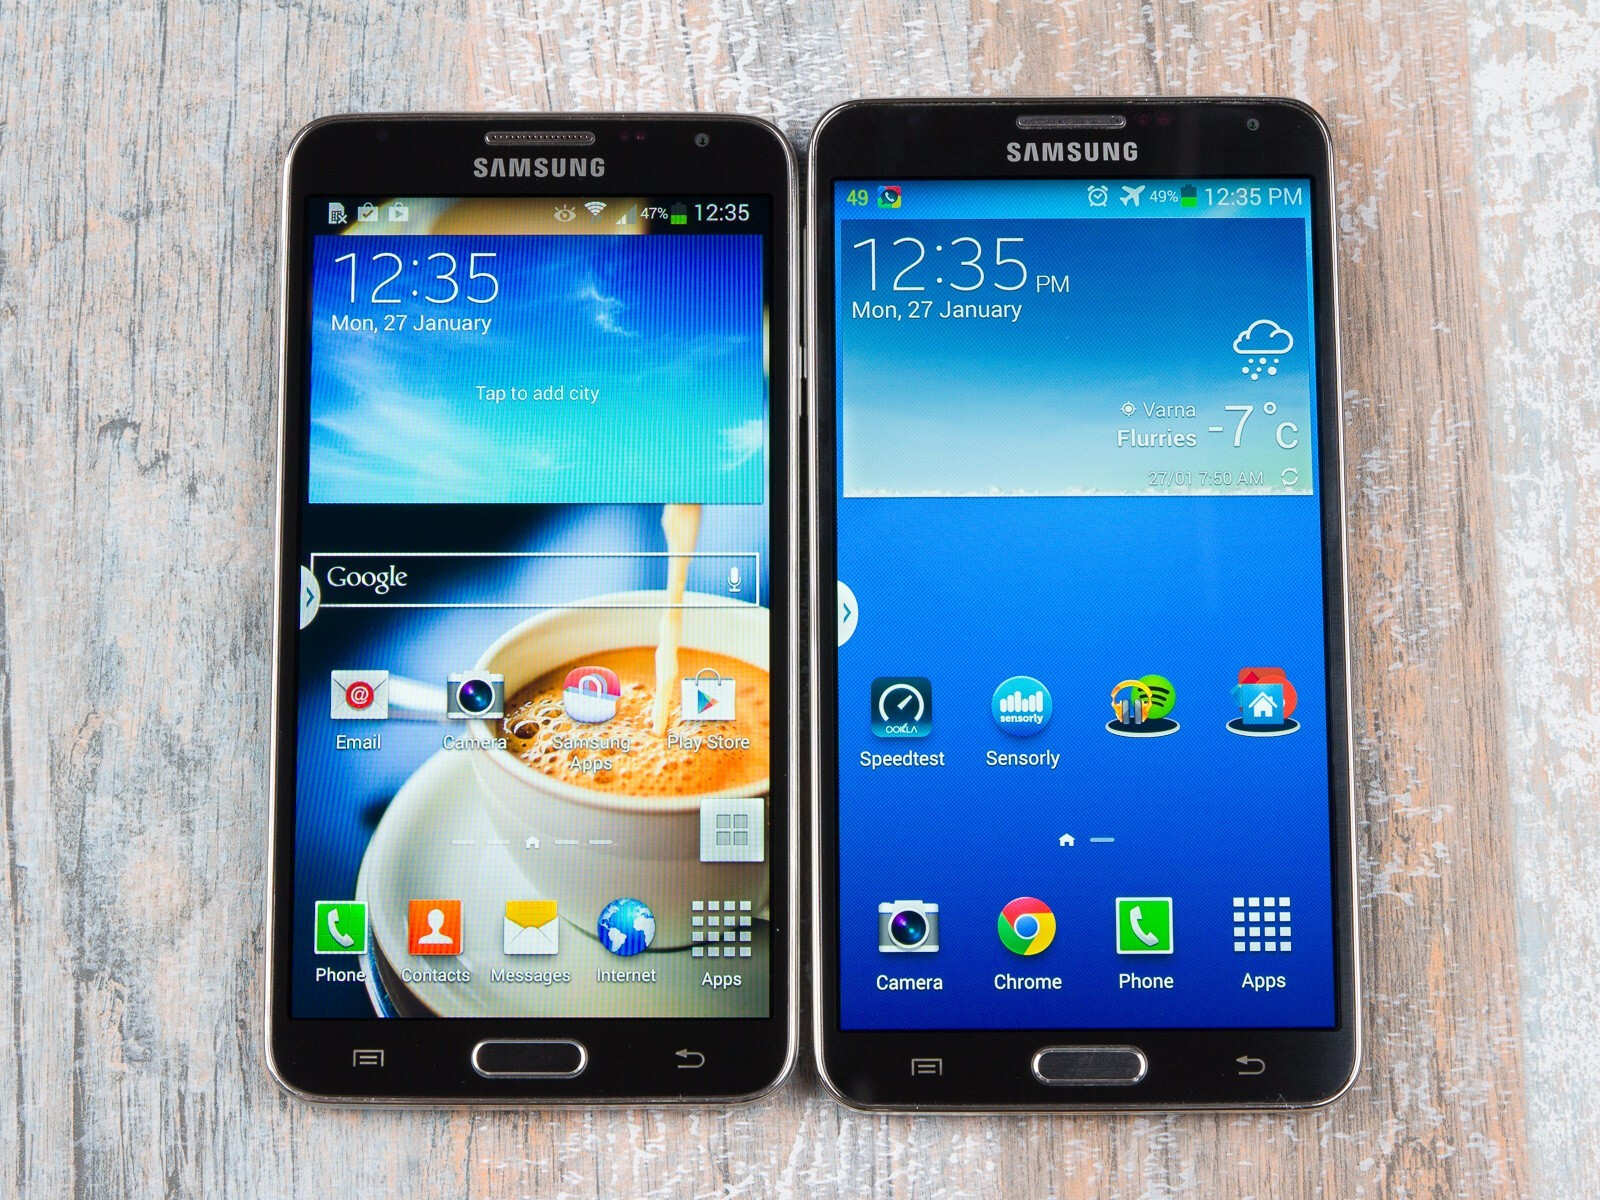 samsung galaxy note 3 neo vs galaxy note 3 first look. Black Bedroom Furniture Sets. Home Design Ideas